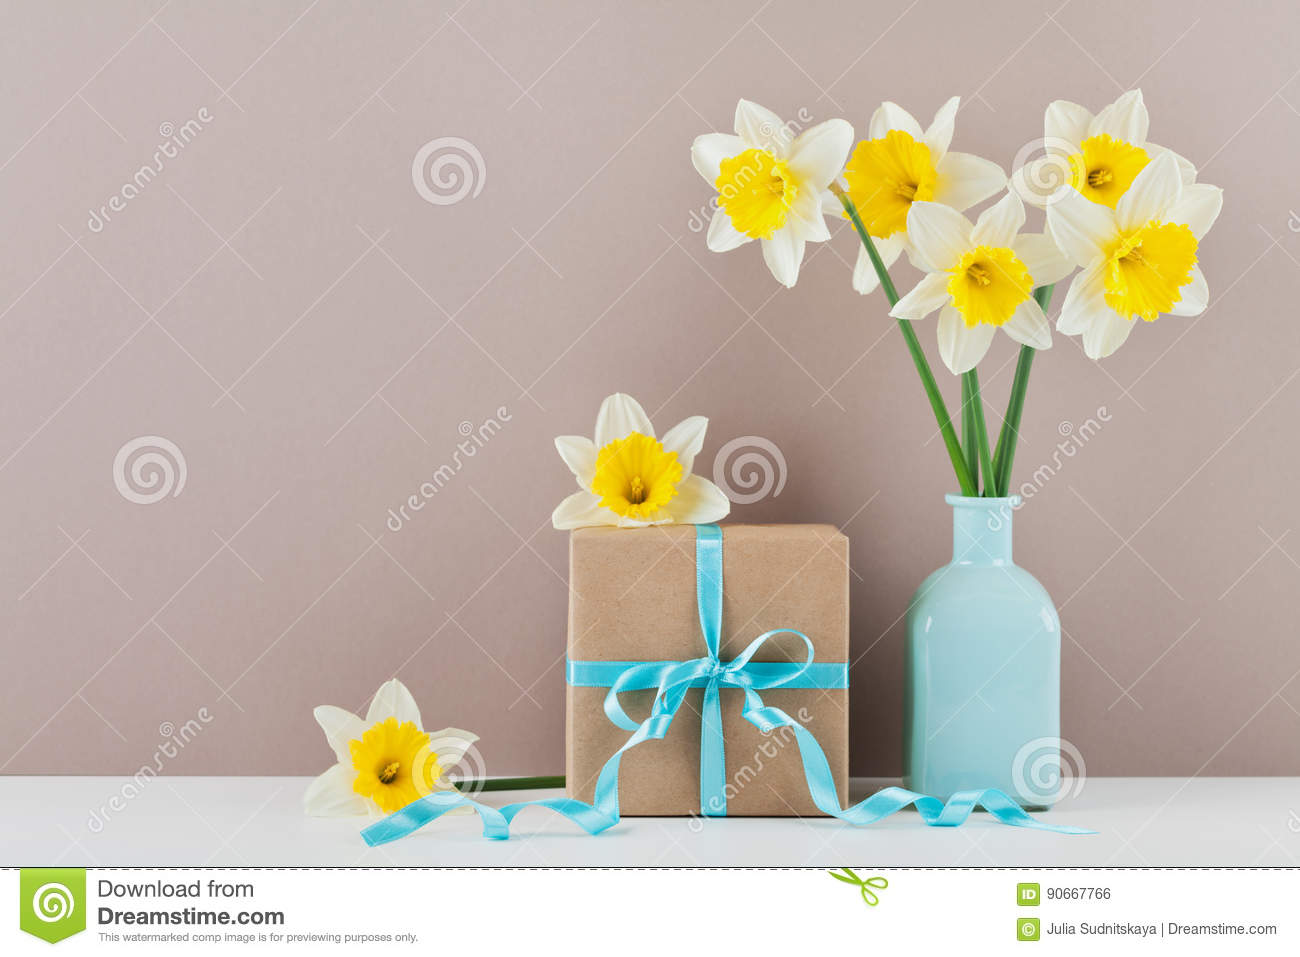 Narcissus Or Daffodil Flowers In Vase And Gift Box For Greeting On